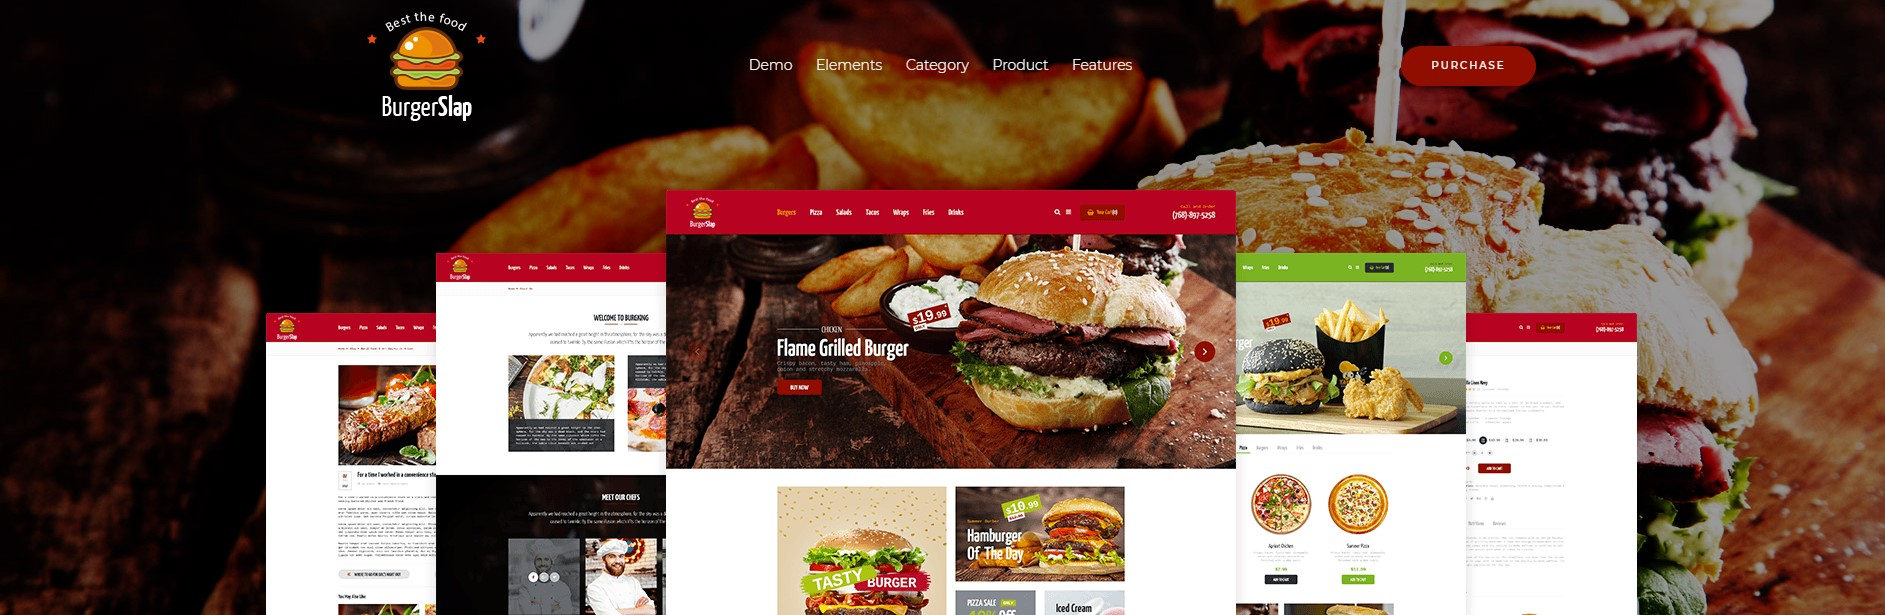 Burger Slap – Fast Food Restaurant WordPress Theme